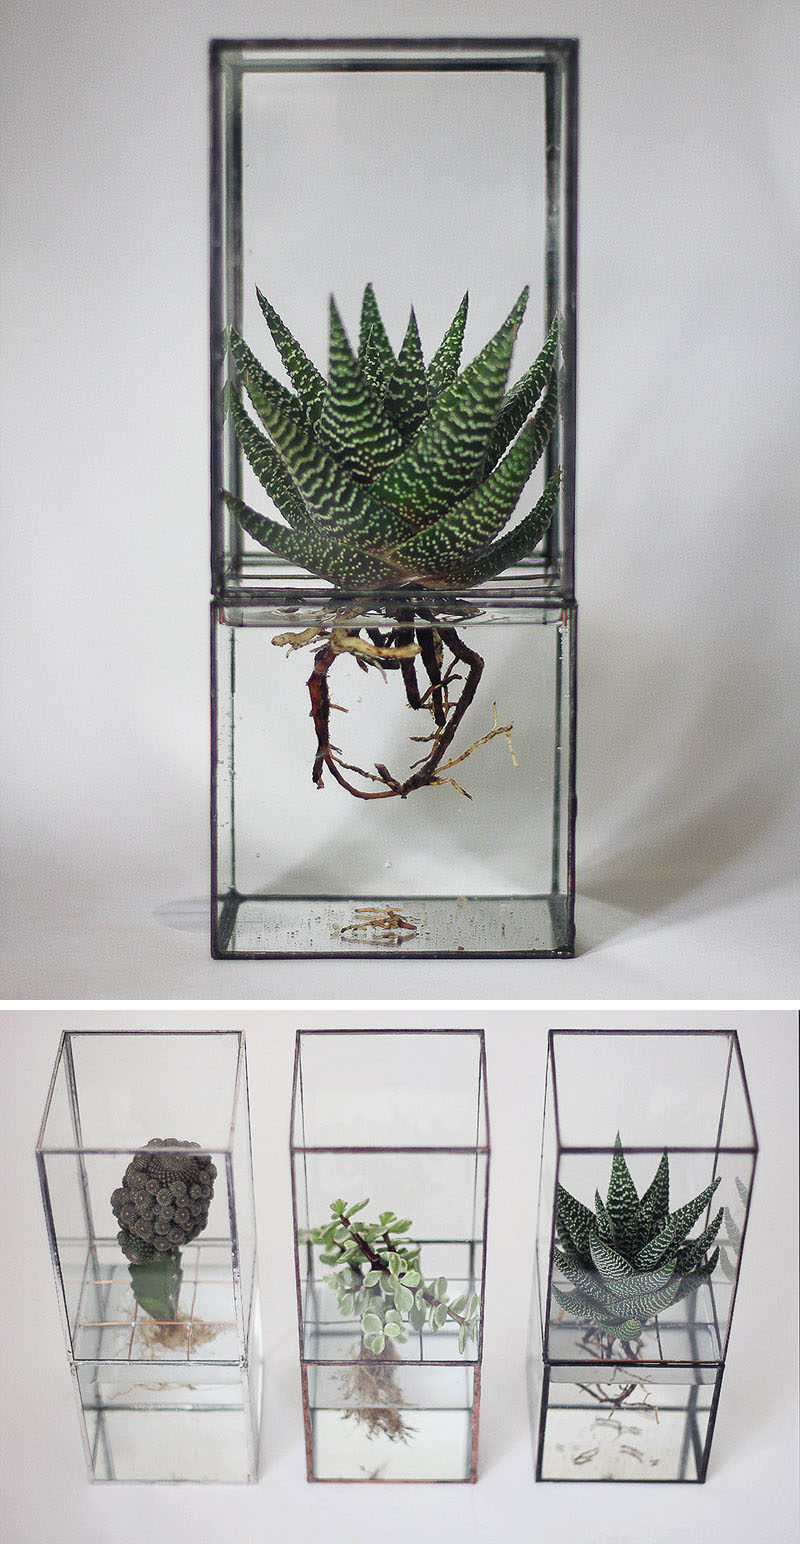 17 Ways To Introduce Botanical Designs Into Your Home Decor // Display a hydroponic terrarium so you can enjoy your plants and have a conversation starter.